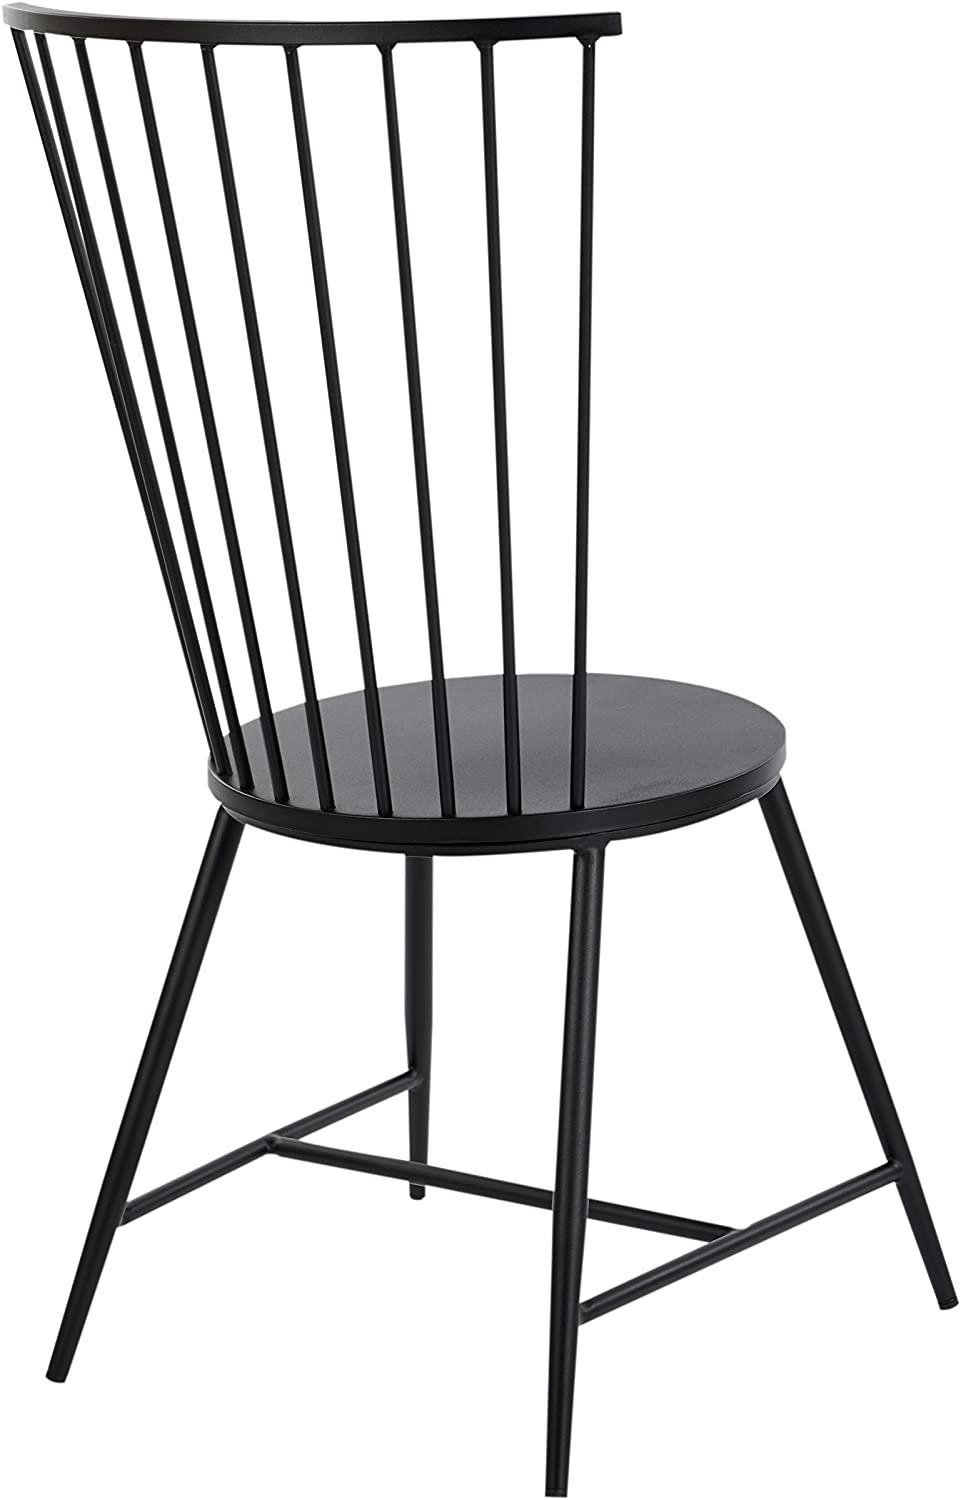 Best Environment-Friendly: OSP Home Furnishing Bryce Dining Chair.